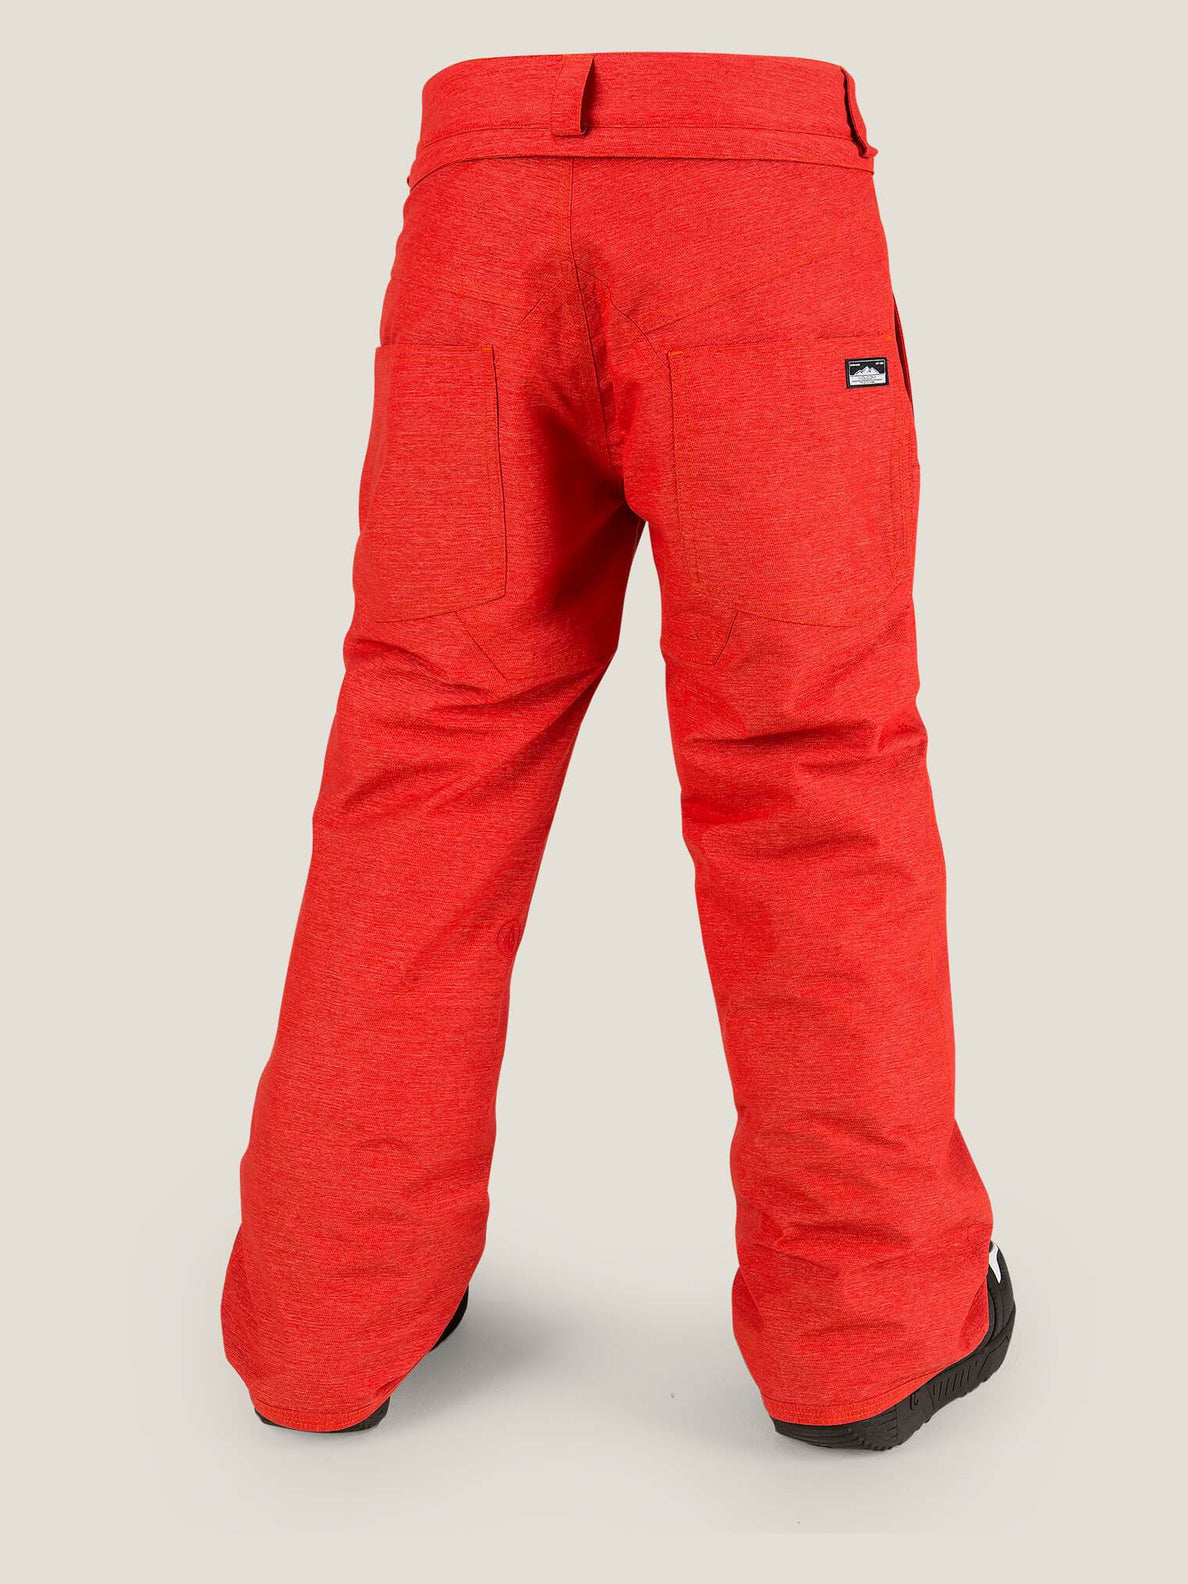 Explorer Insulated Pant In Fire Red, Back View